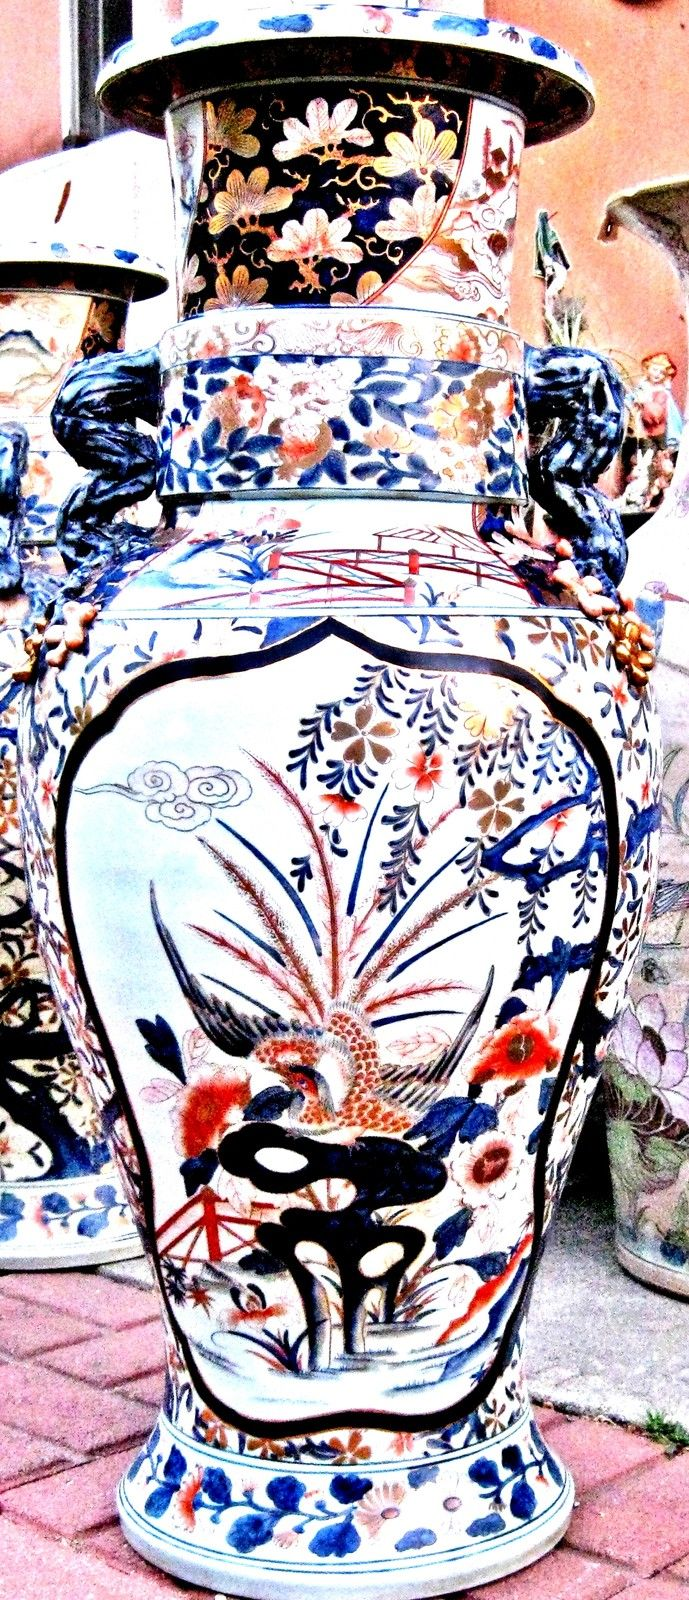 Antique Huge Chinese Imari Porcelain Vase Hand Painted, Gold Gilt, 19th Century.